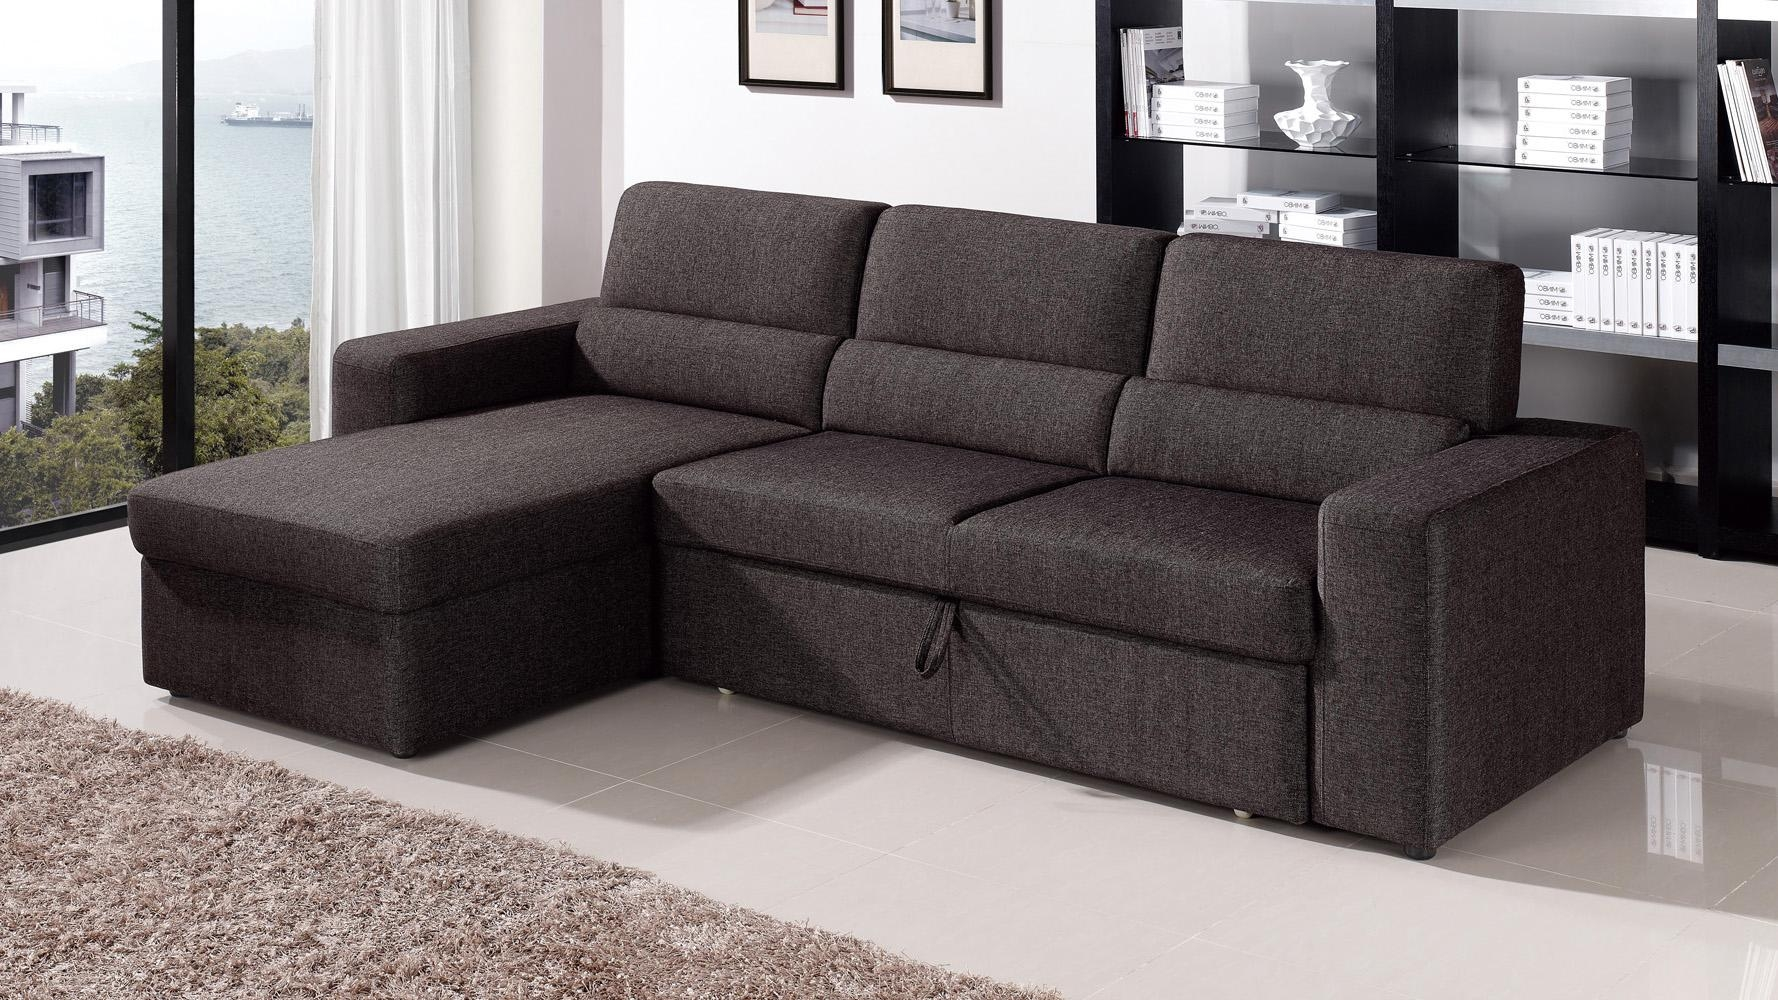 Black/brown Clubber Sleeper Sectional Sofa | Zuri Furniture Regarding Pull Out Sofa Chairs (View 13 of 20)